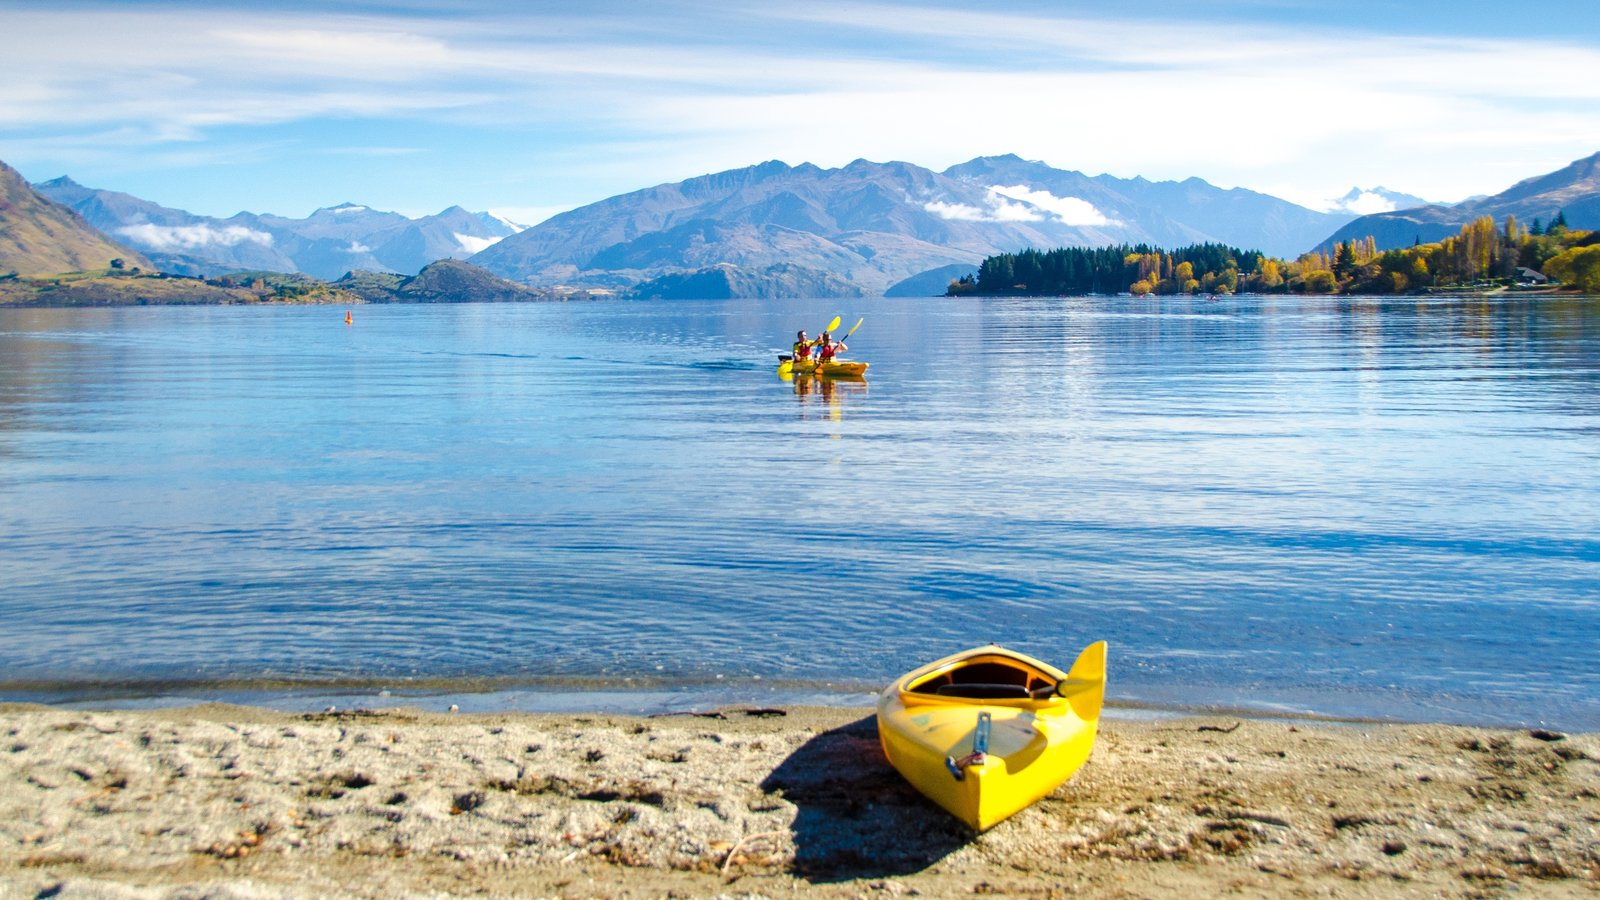 Wanaka which includes kayaking or canoeing, mountains and a lake or waterhole